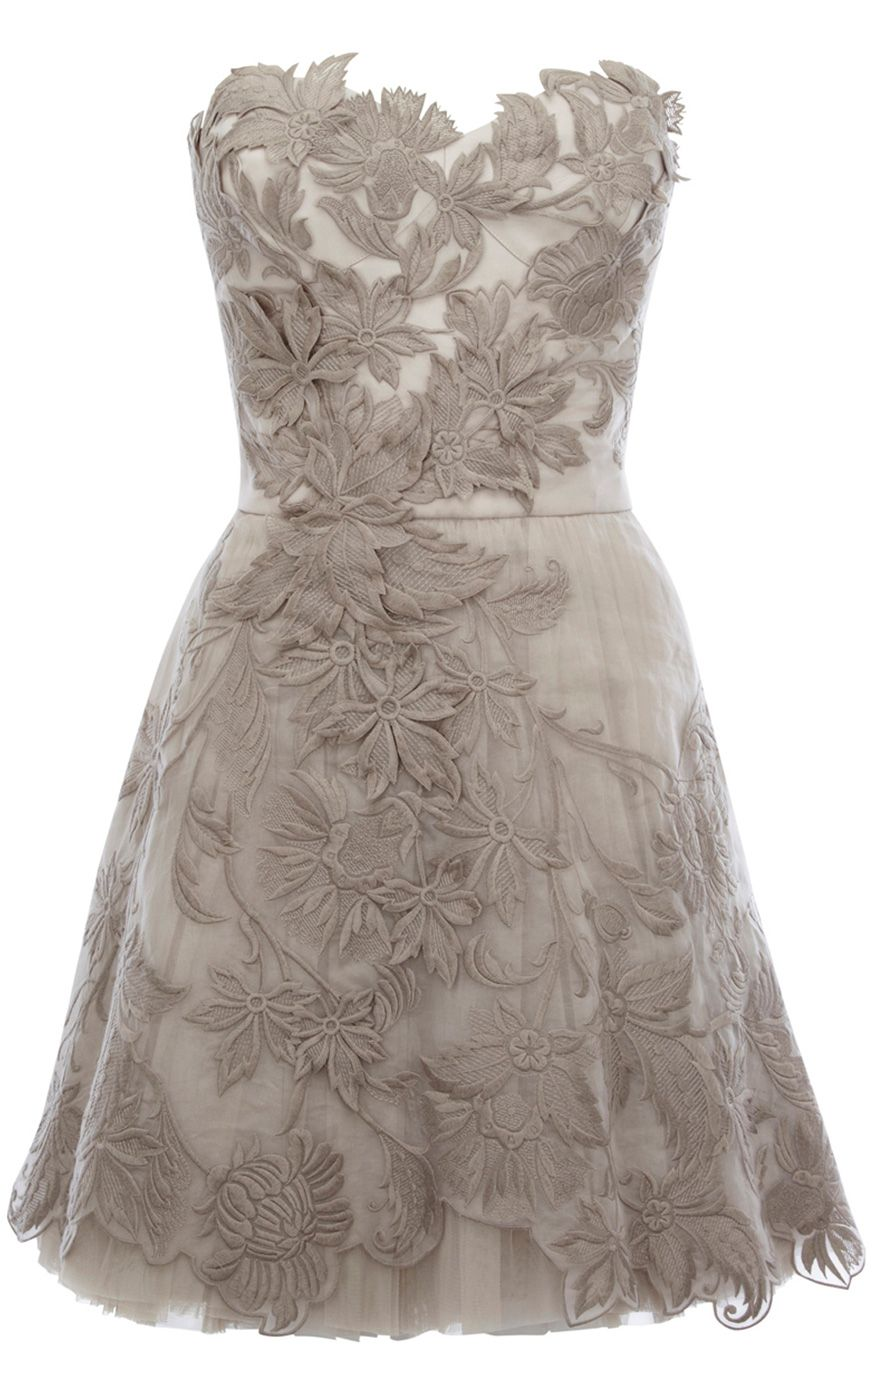 Karen Millen Dress. I want this immediately. Thanks for pinning, Kim. You know me well!!!! OBSESSED.